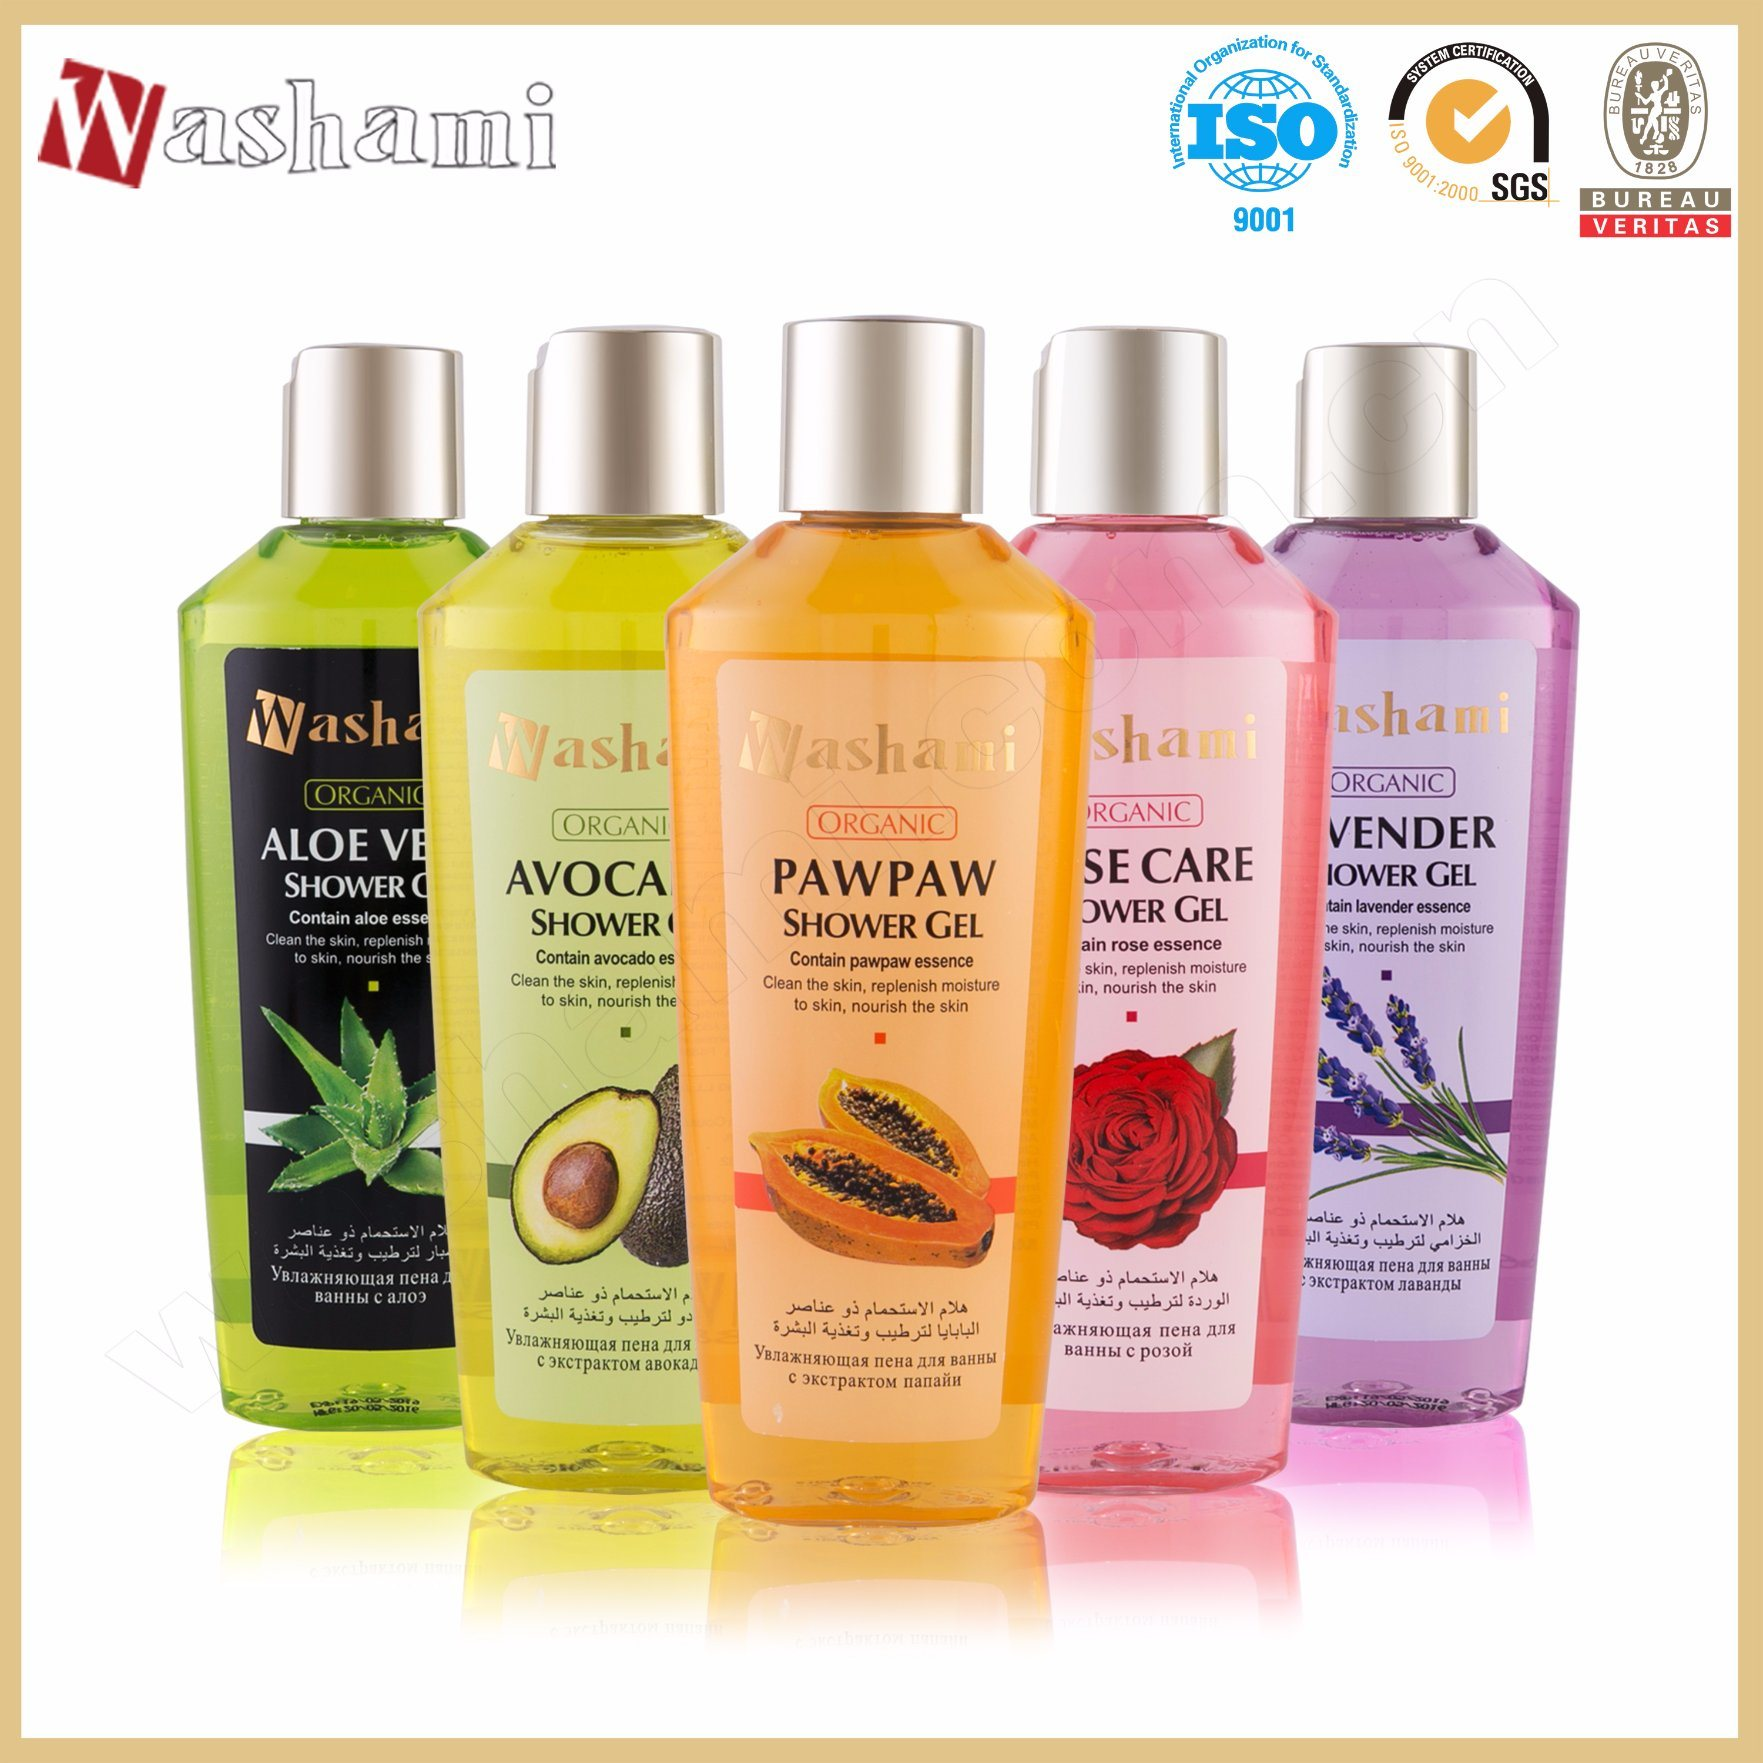 Washami Organic Plant Essence Bath & Shower Gel